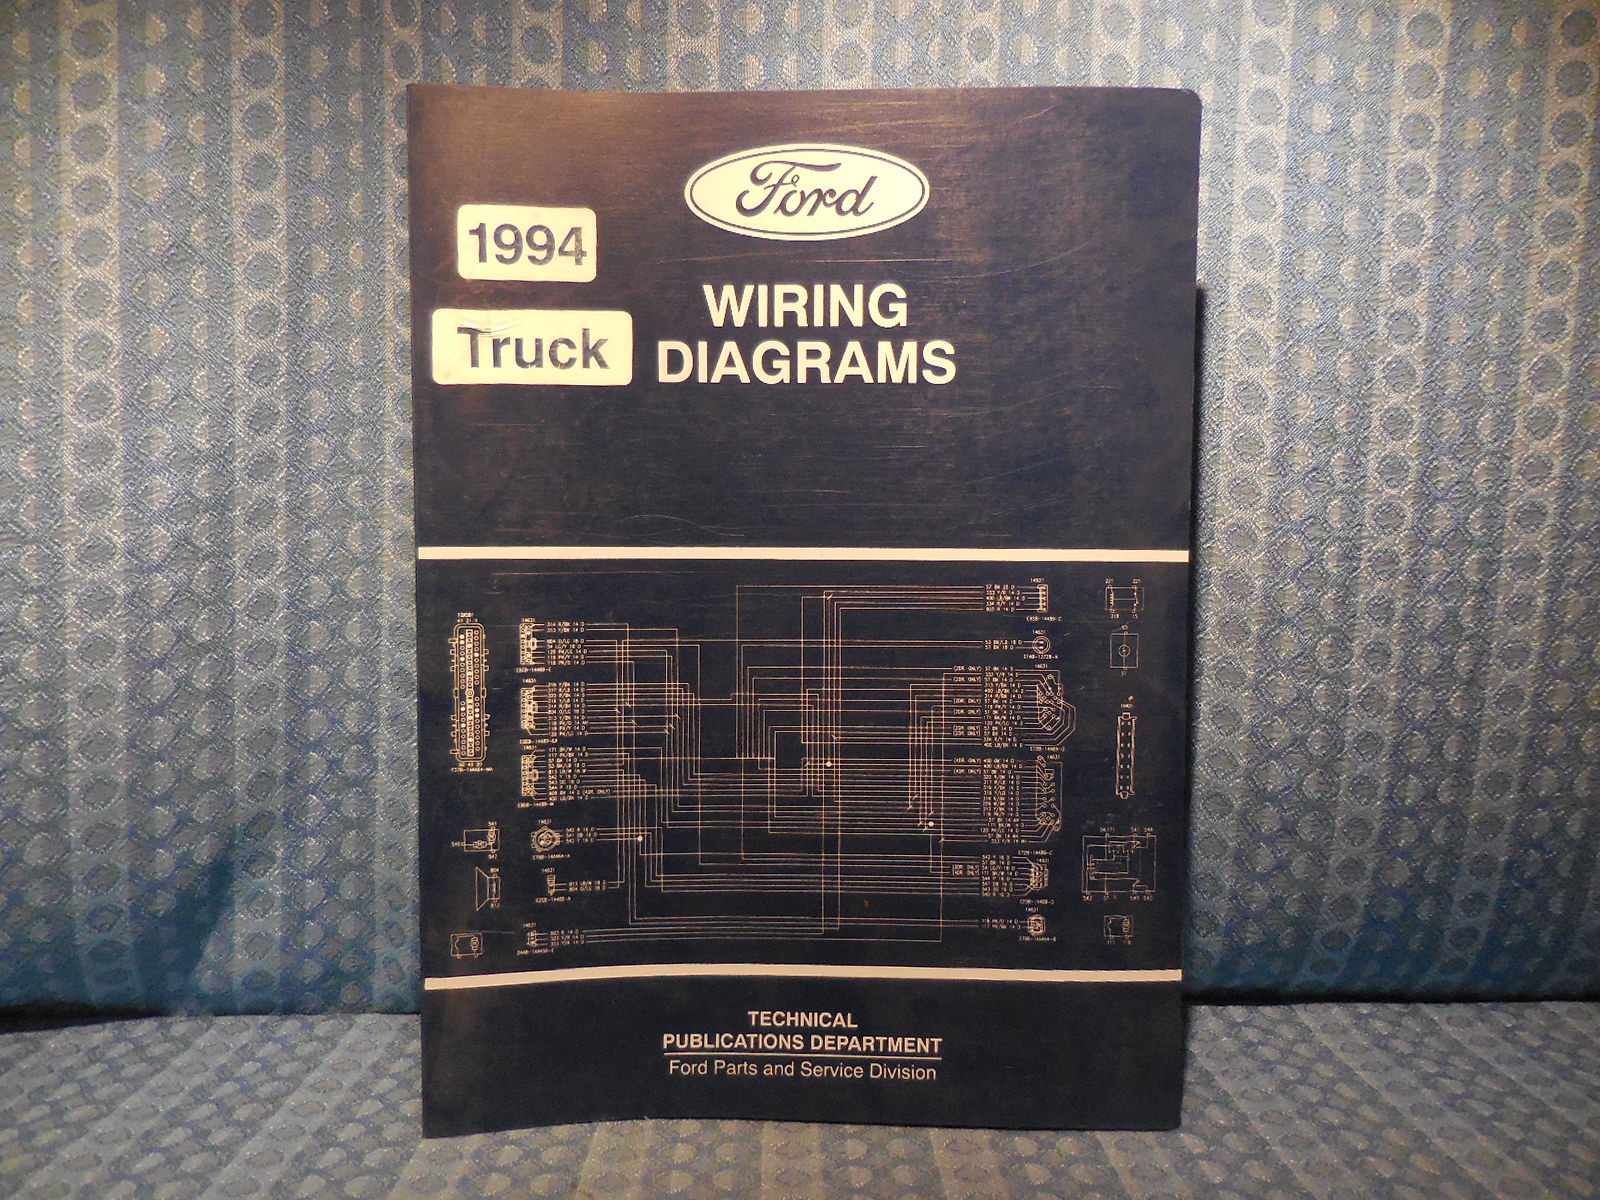 1994 Ford Truck OEM Wiring Diagrams F600-800 Ranger Econoline L Series  Explorer